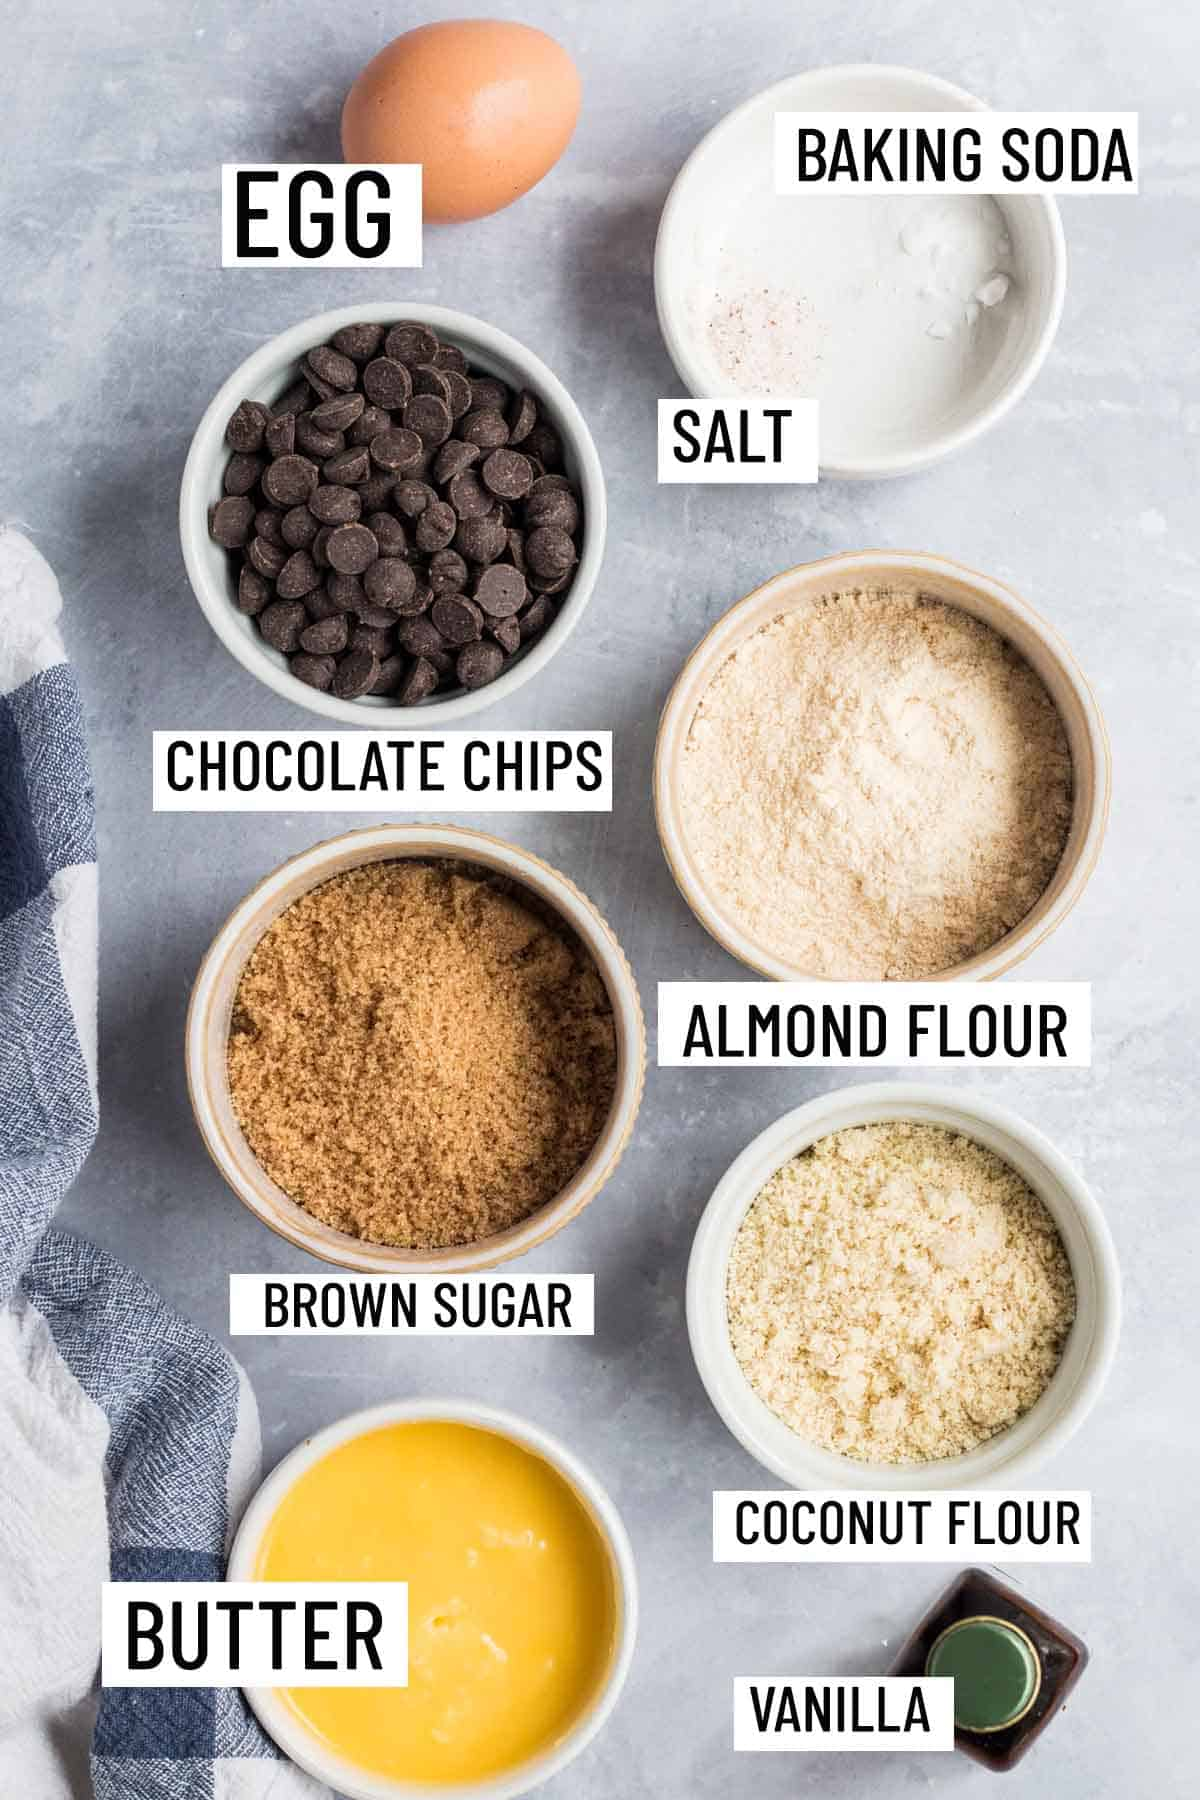 Birds eye view of portioned ingredients to make coconut flour cookies including flour, butter, vanilla, brown sugar, chocolate chips, salt, baking soda, and an egg.